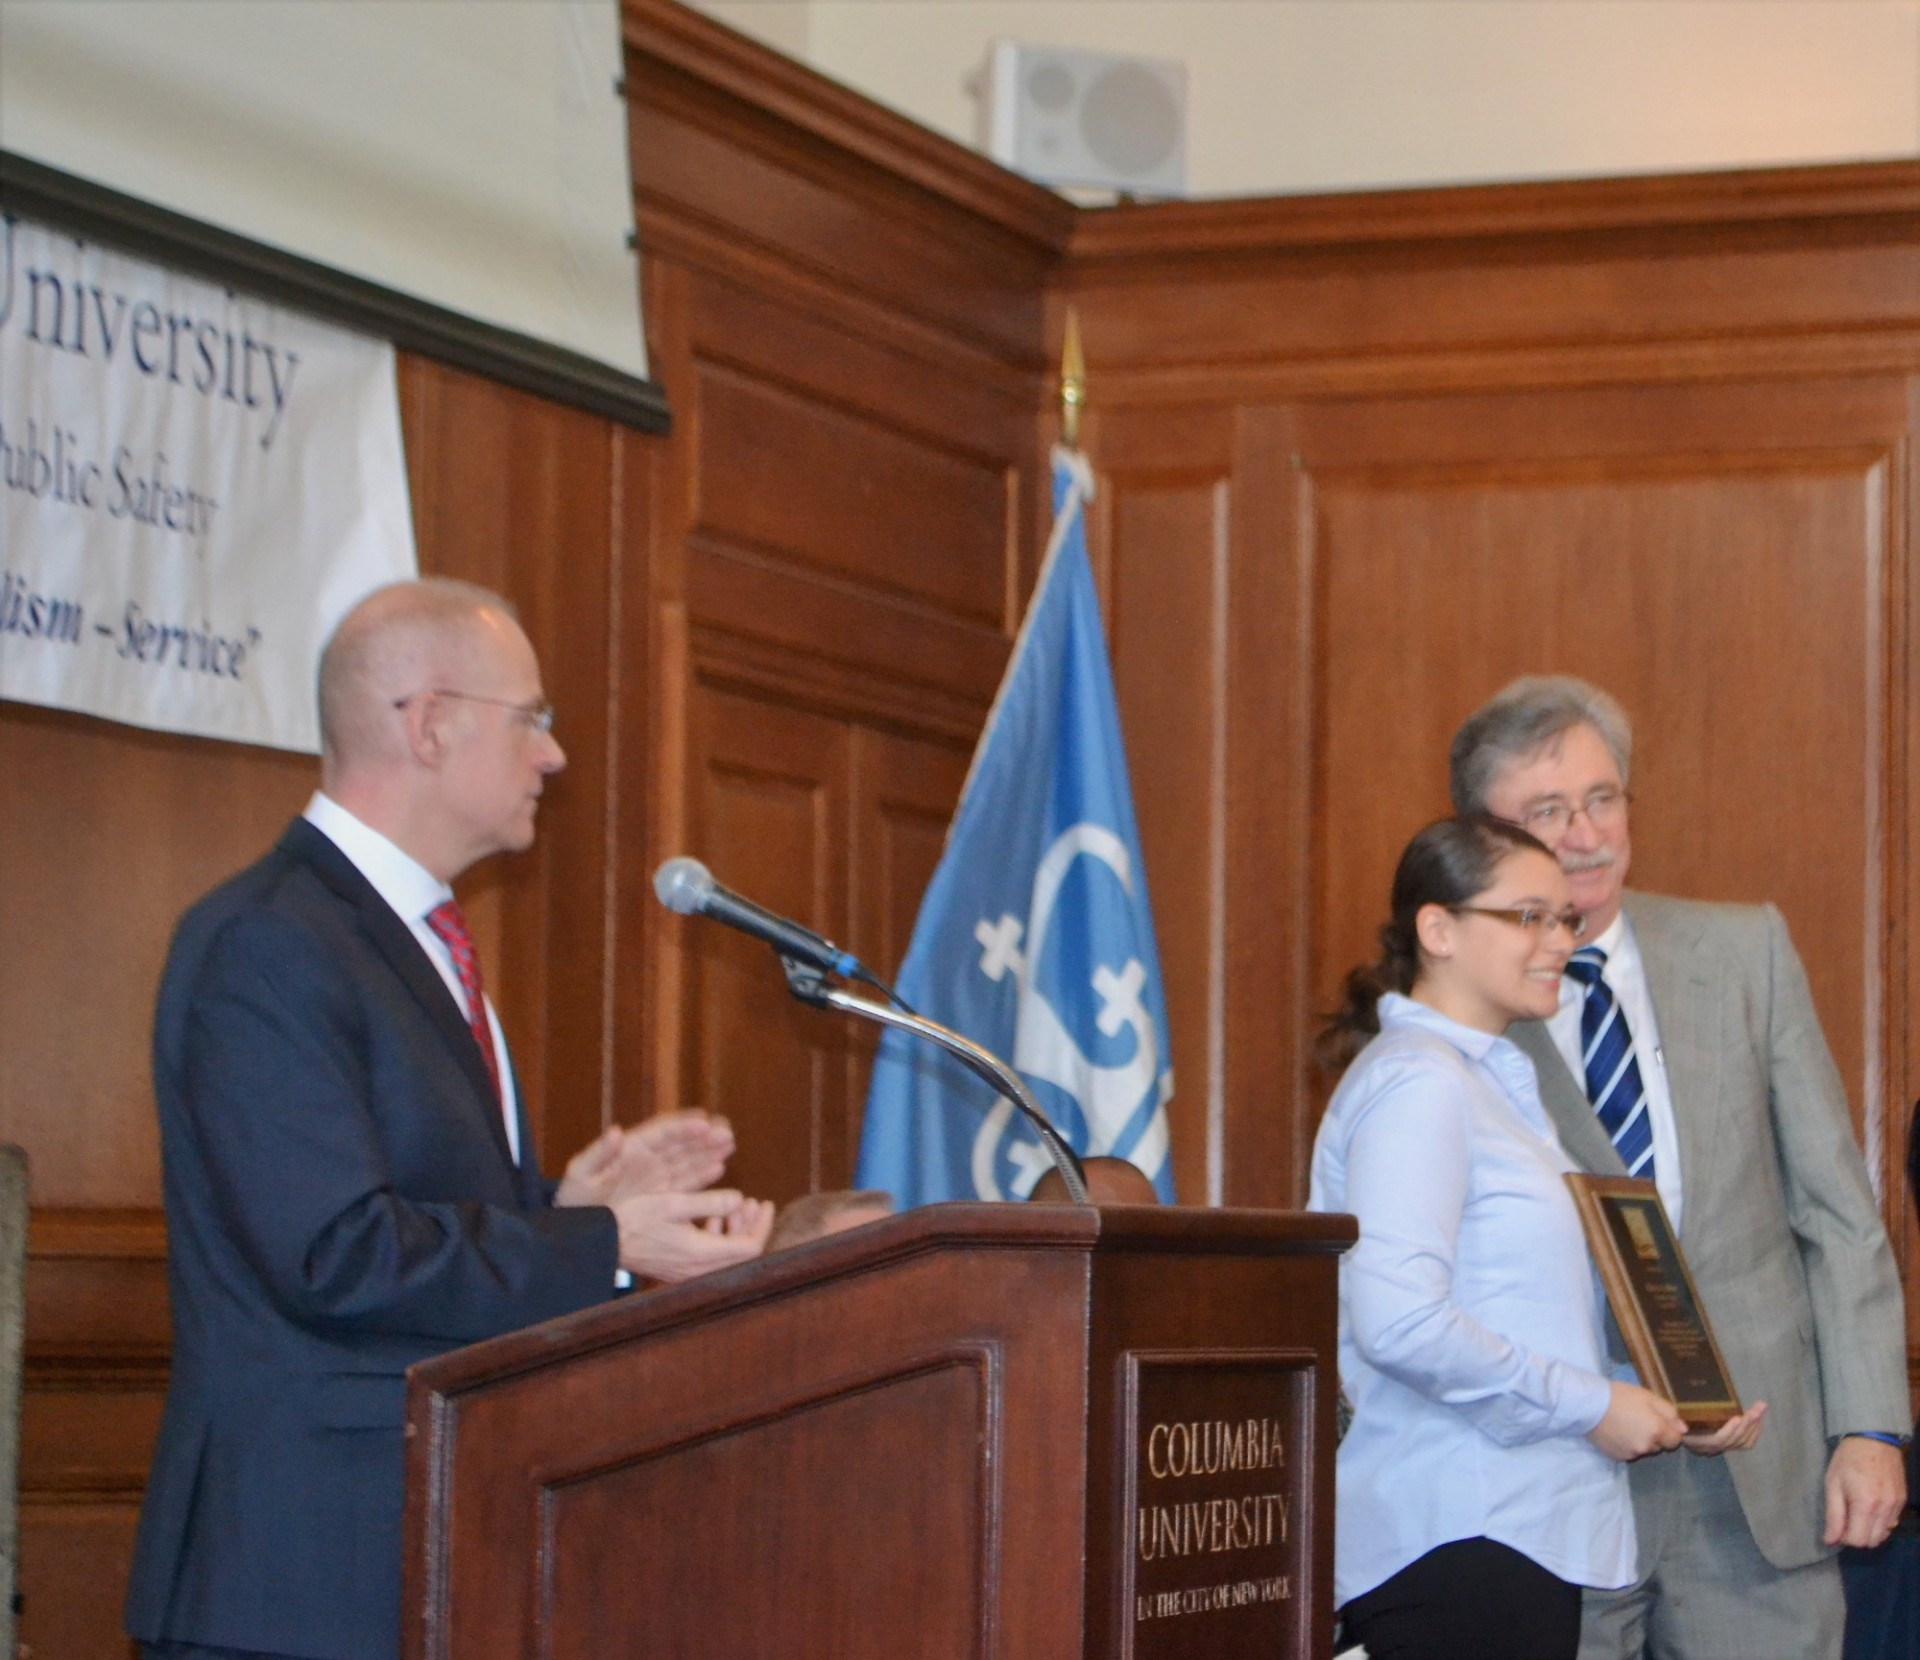 Executive Director Albert Becker presents awards during the ceremony.